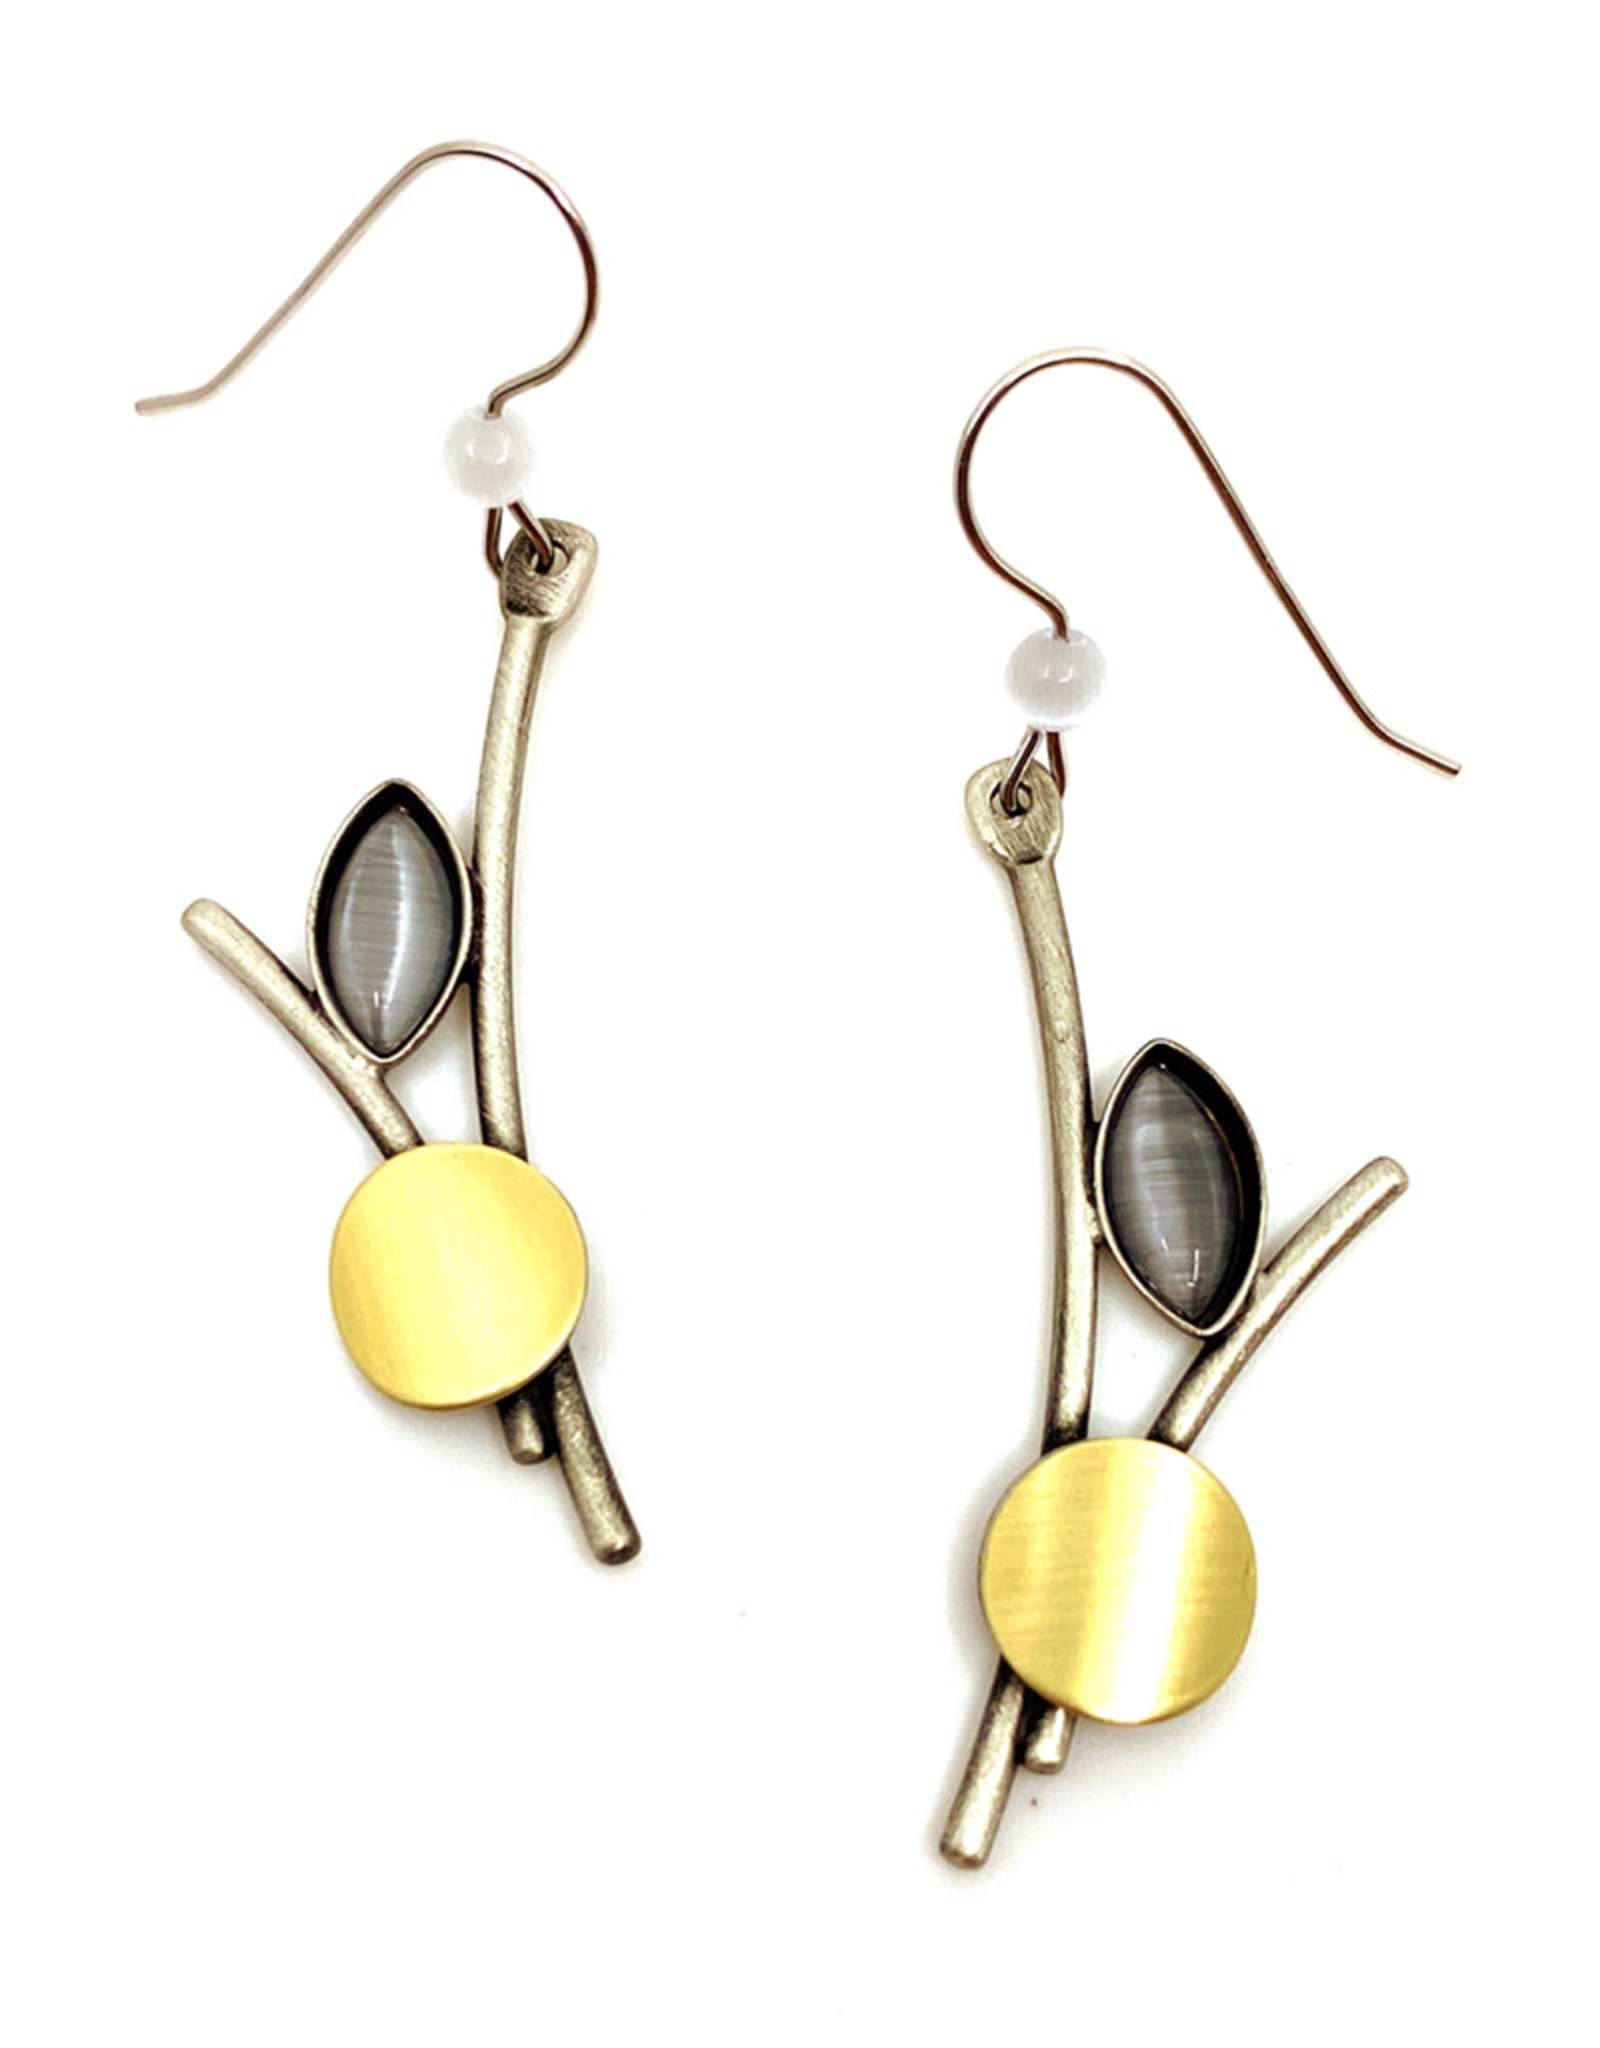 CHRISTOPHE POLY ABSTRACT RODS EARRINGS